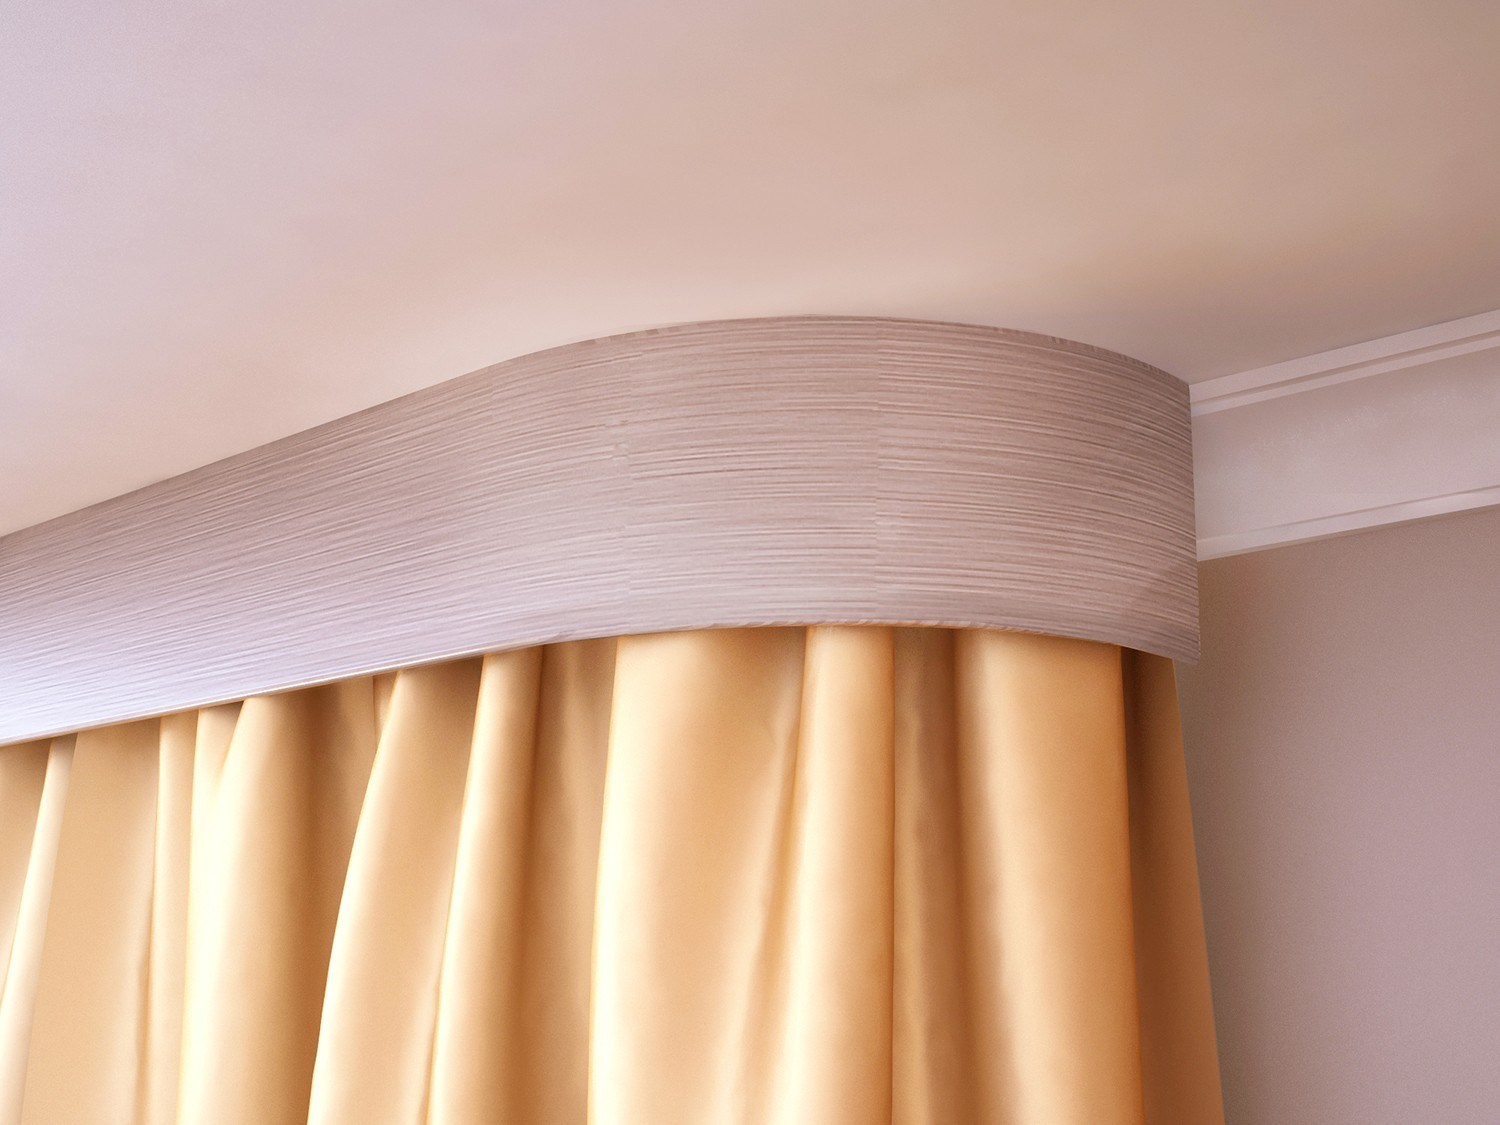 Rounded cornice and peach colored curtain